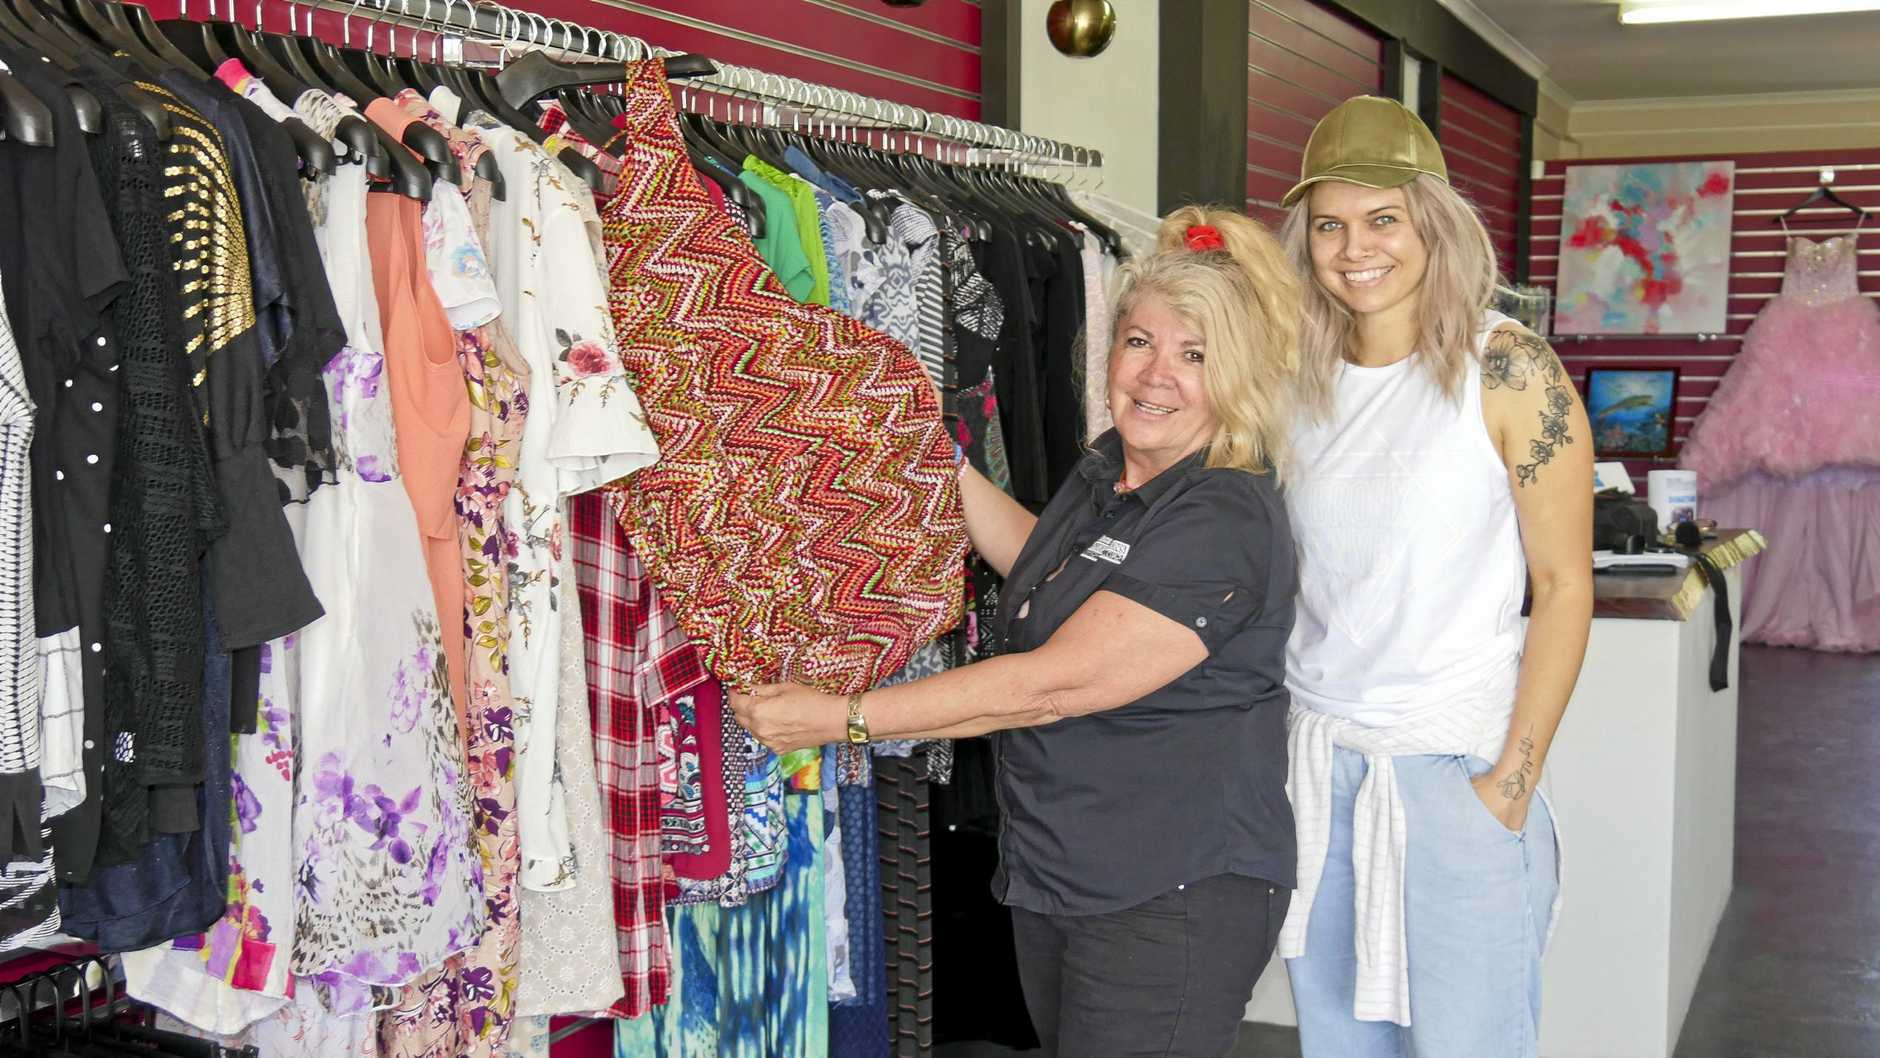 ALL WELCOME: Bayside Transformations CEO Tina Davie and new op shop manager Sotik Sanderson preparing their new store for its official opening on Monday morning.